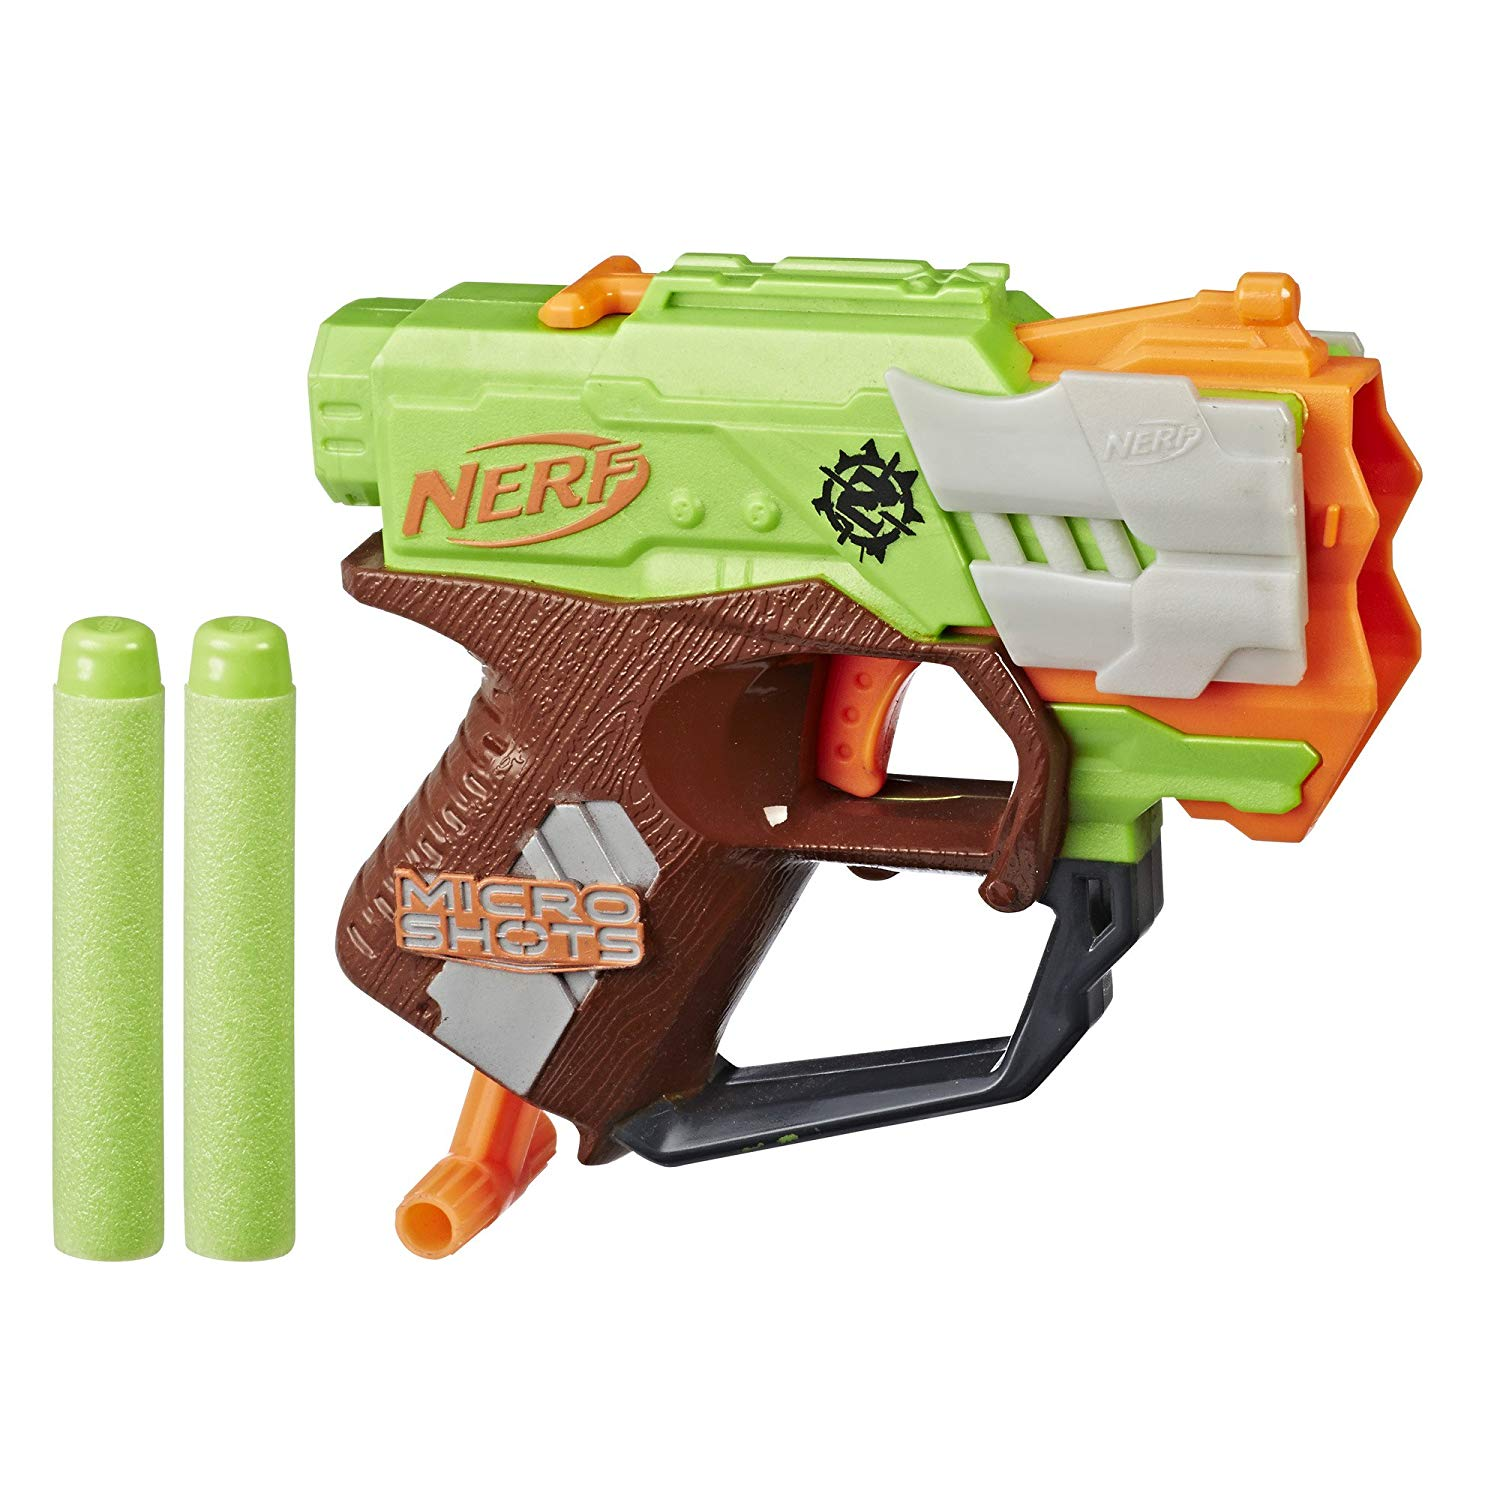 Nerf Microshots Crossfire Bow